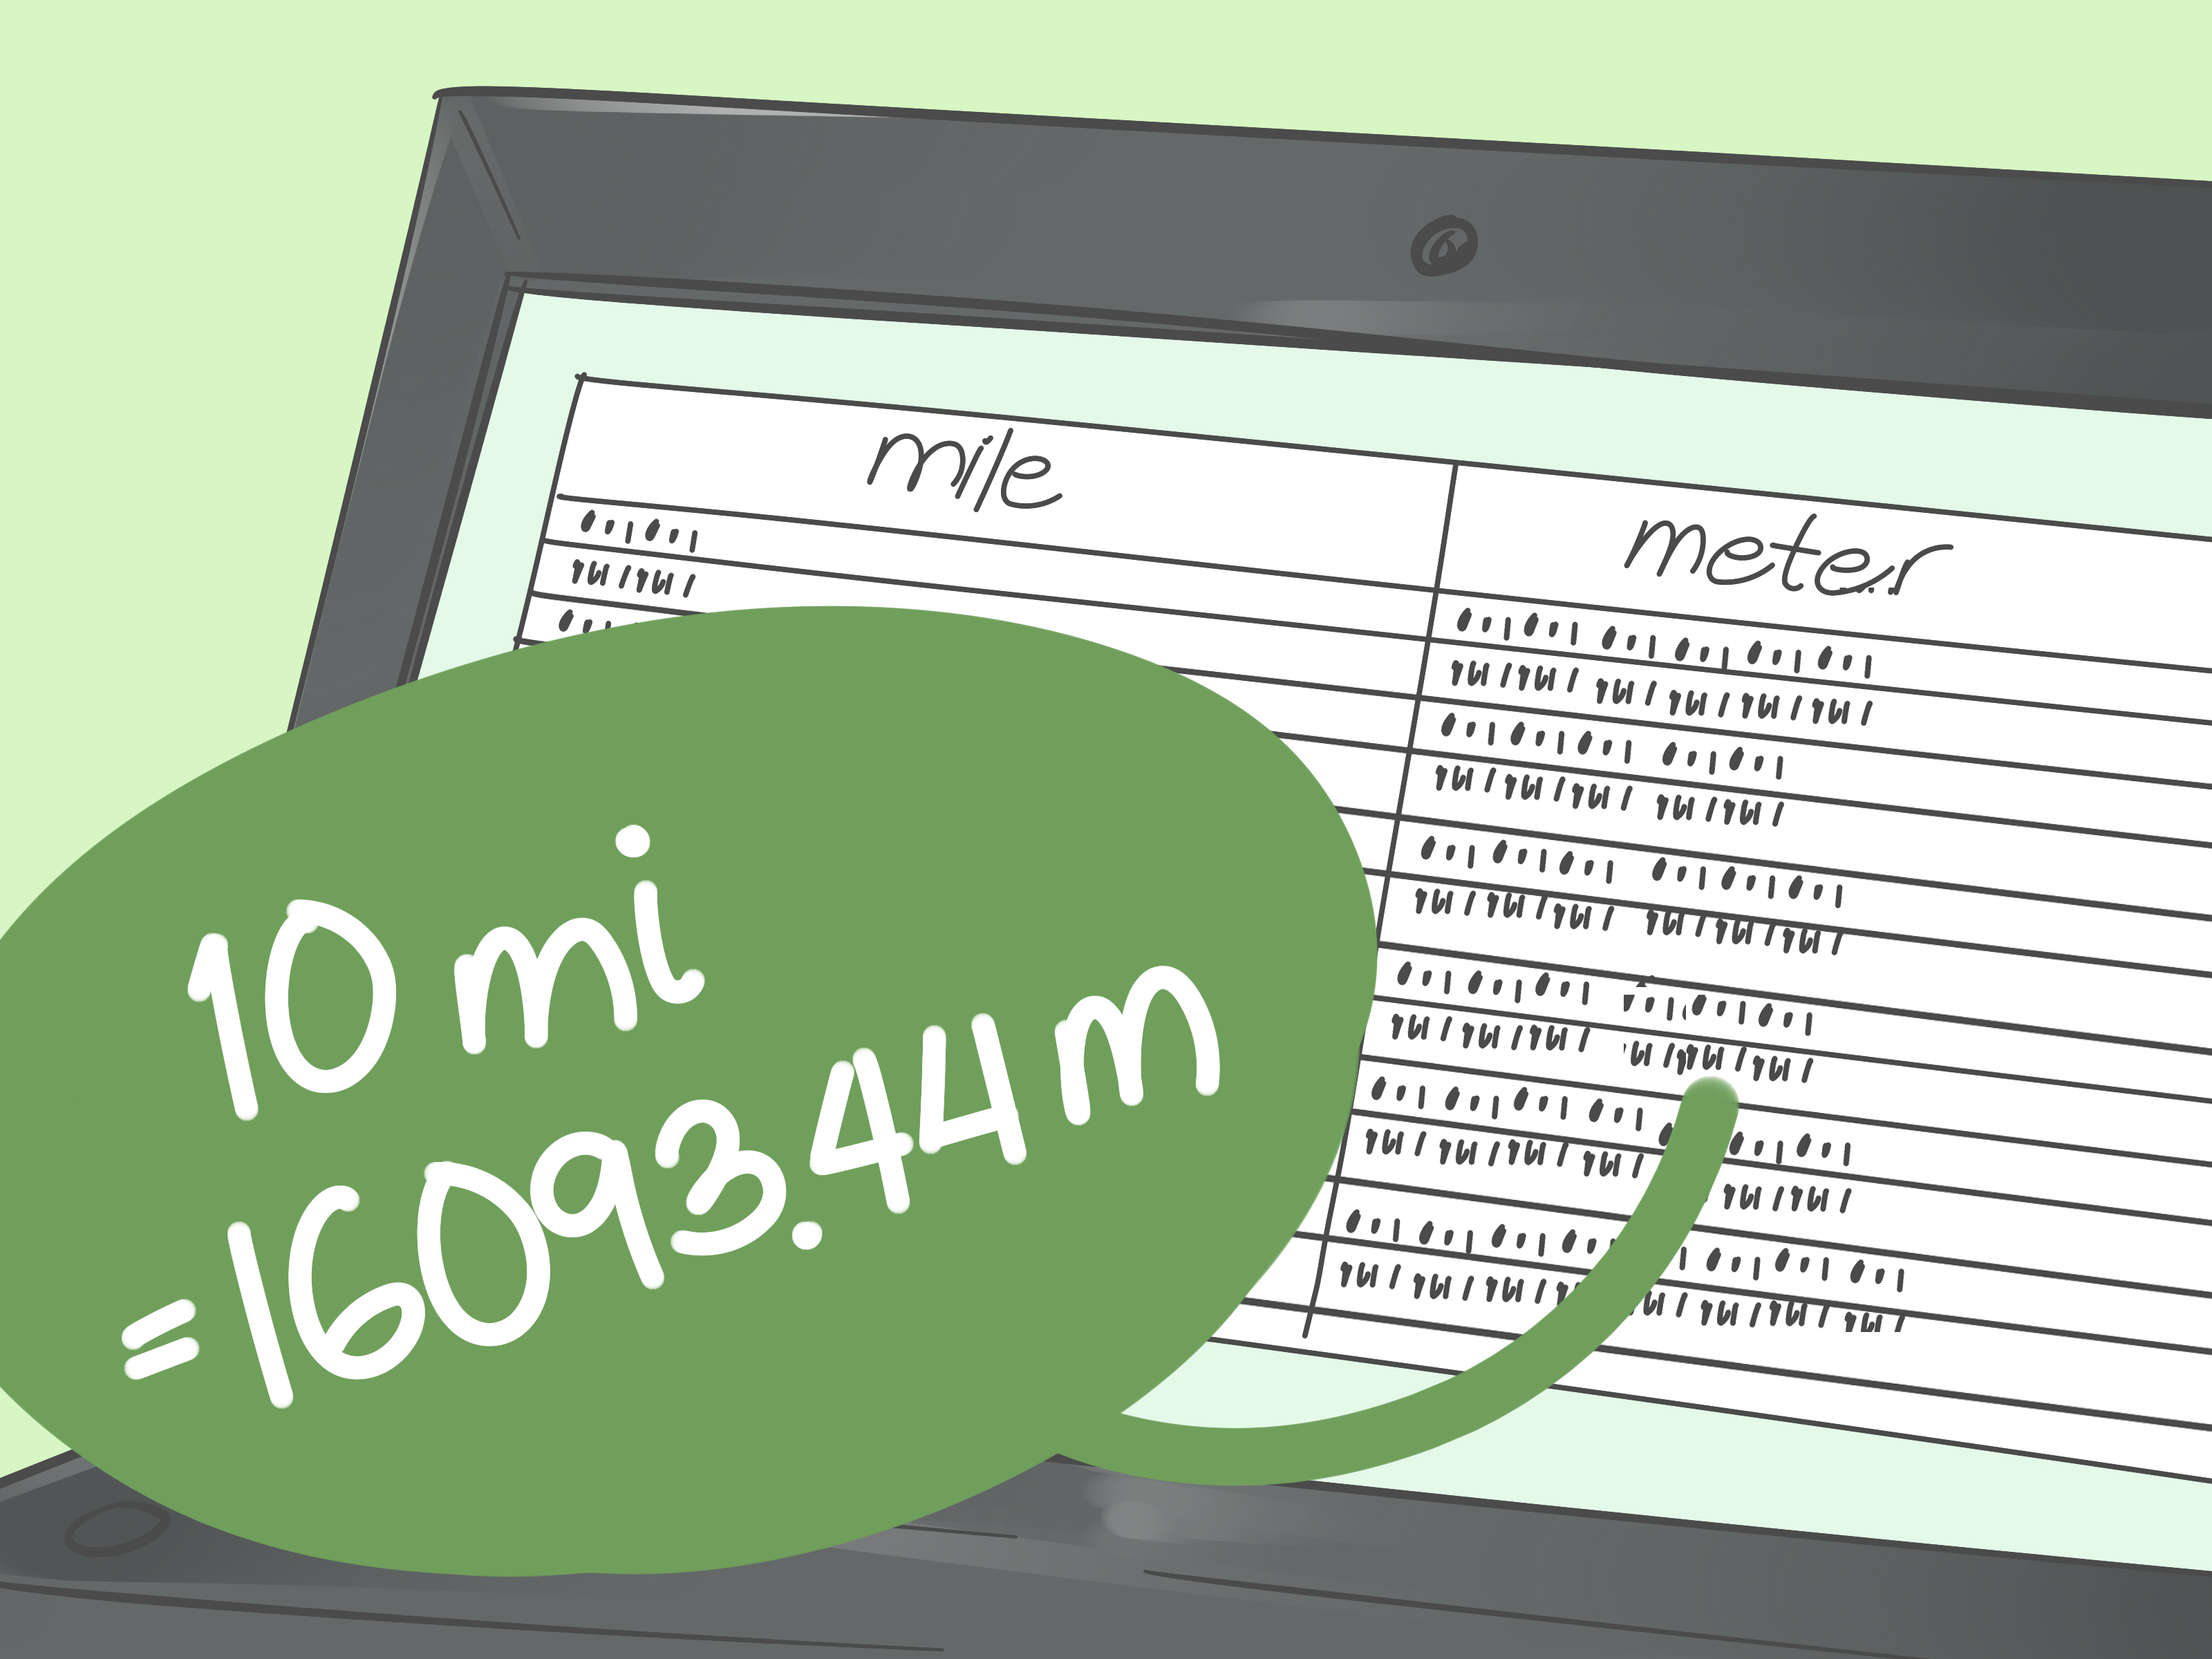 5 5 In Meters How To Convert Miles To Meters 5 Steps With Pictures Wikihow